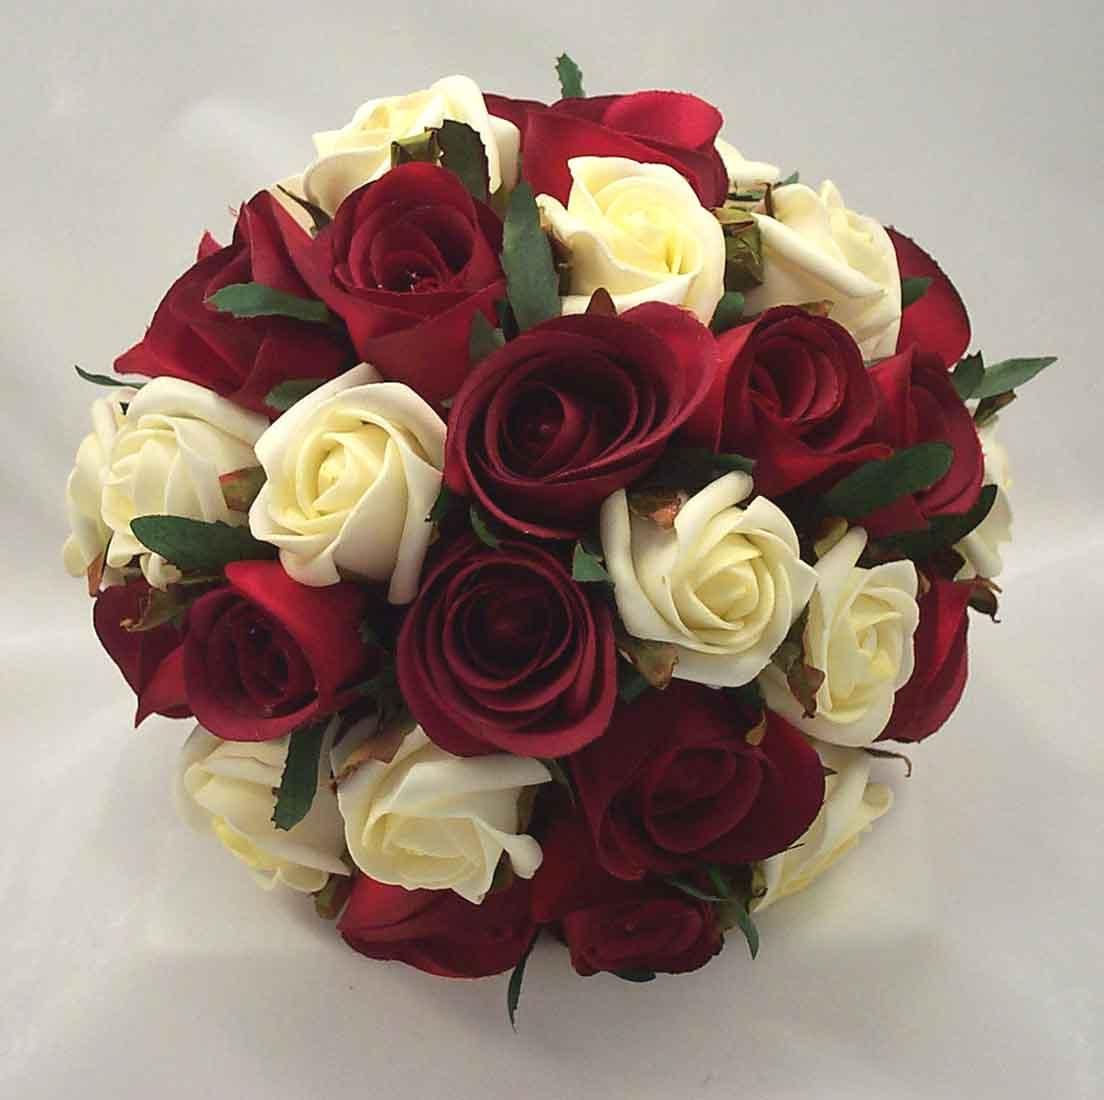 Burgandy and ivory flower bouquet wedding ideas pinterest